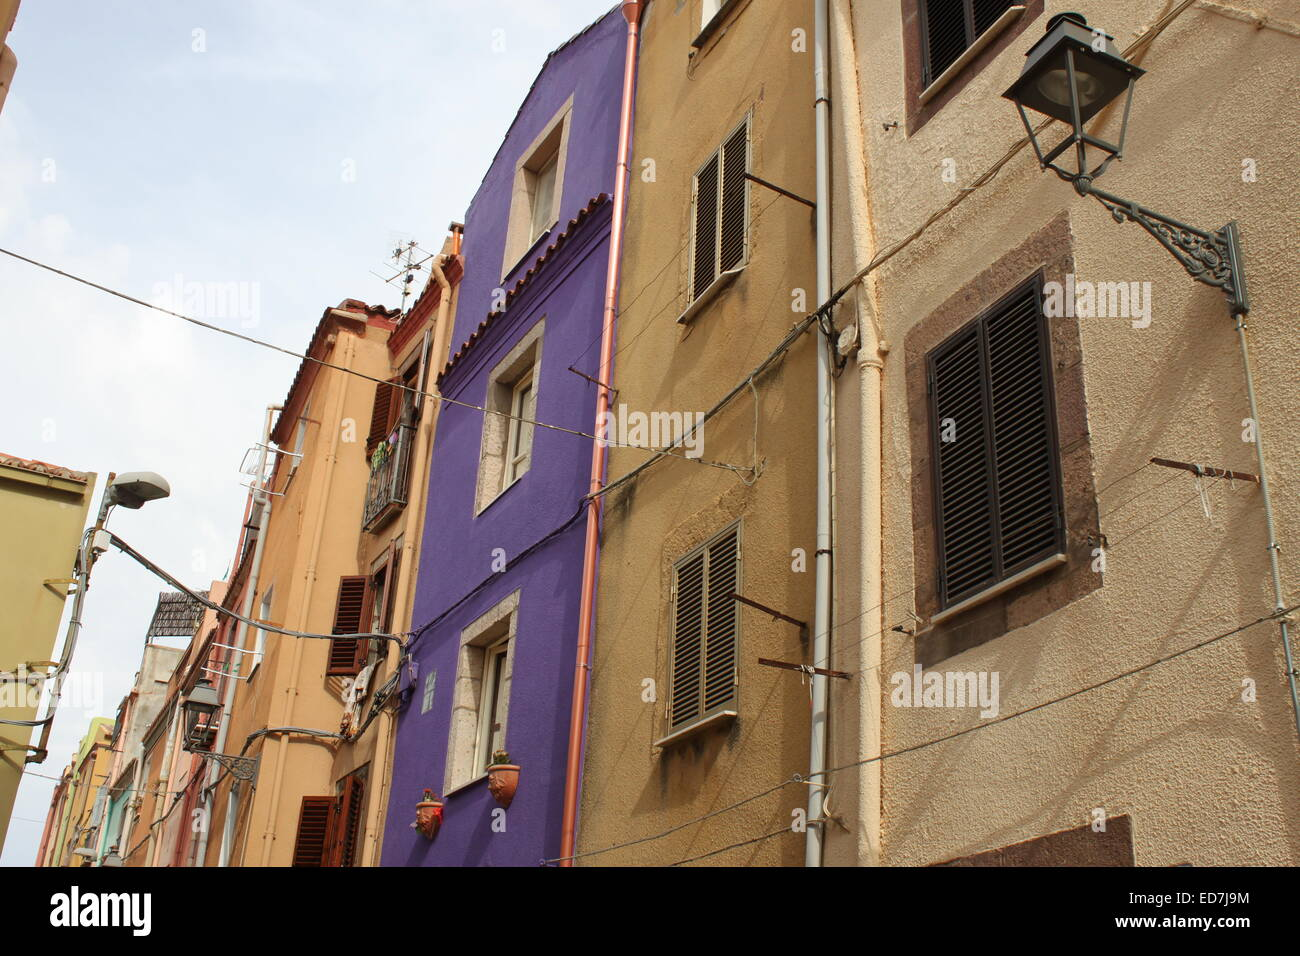 Picture taken of tall houses in Sardinia/Italy - Stock Image